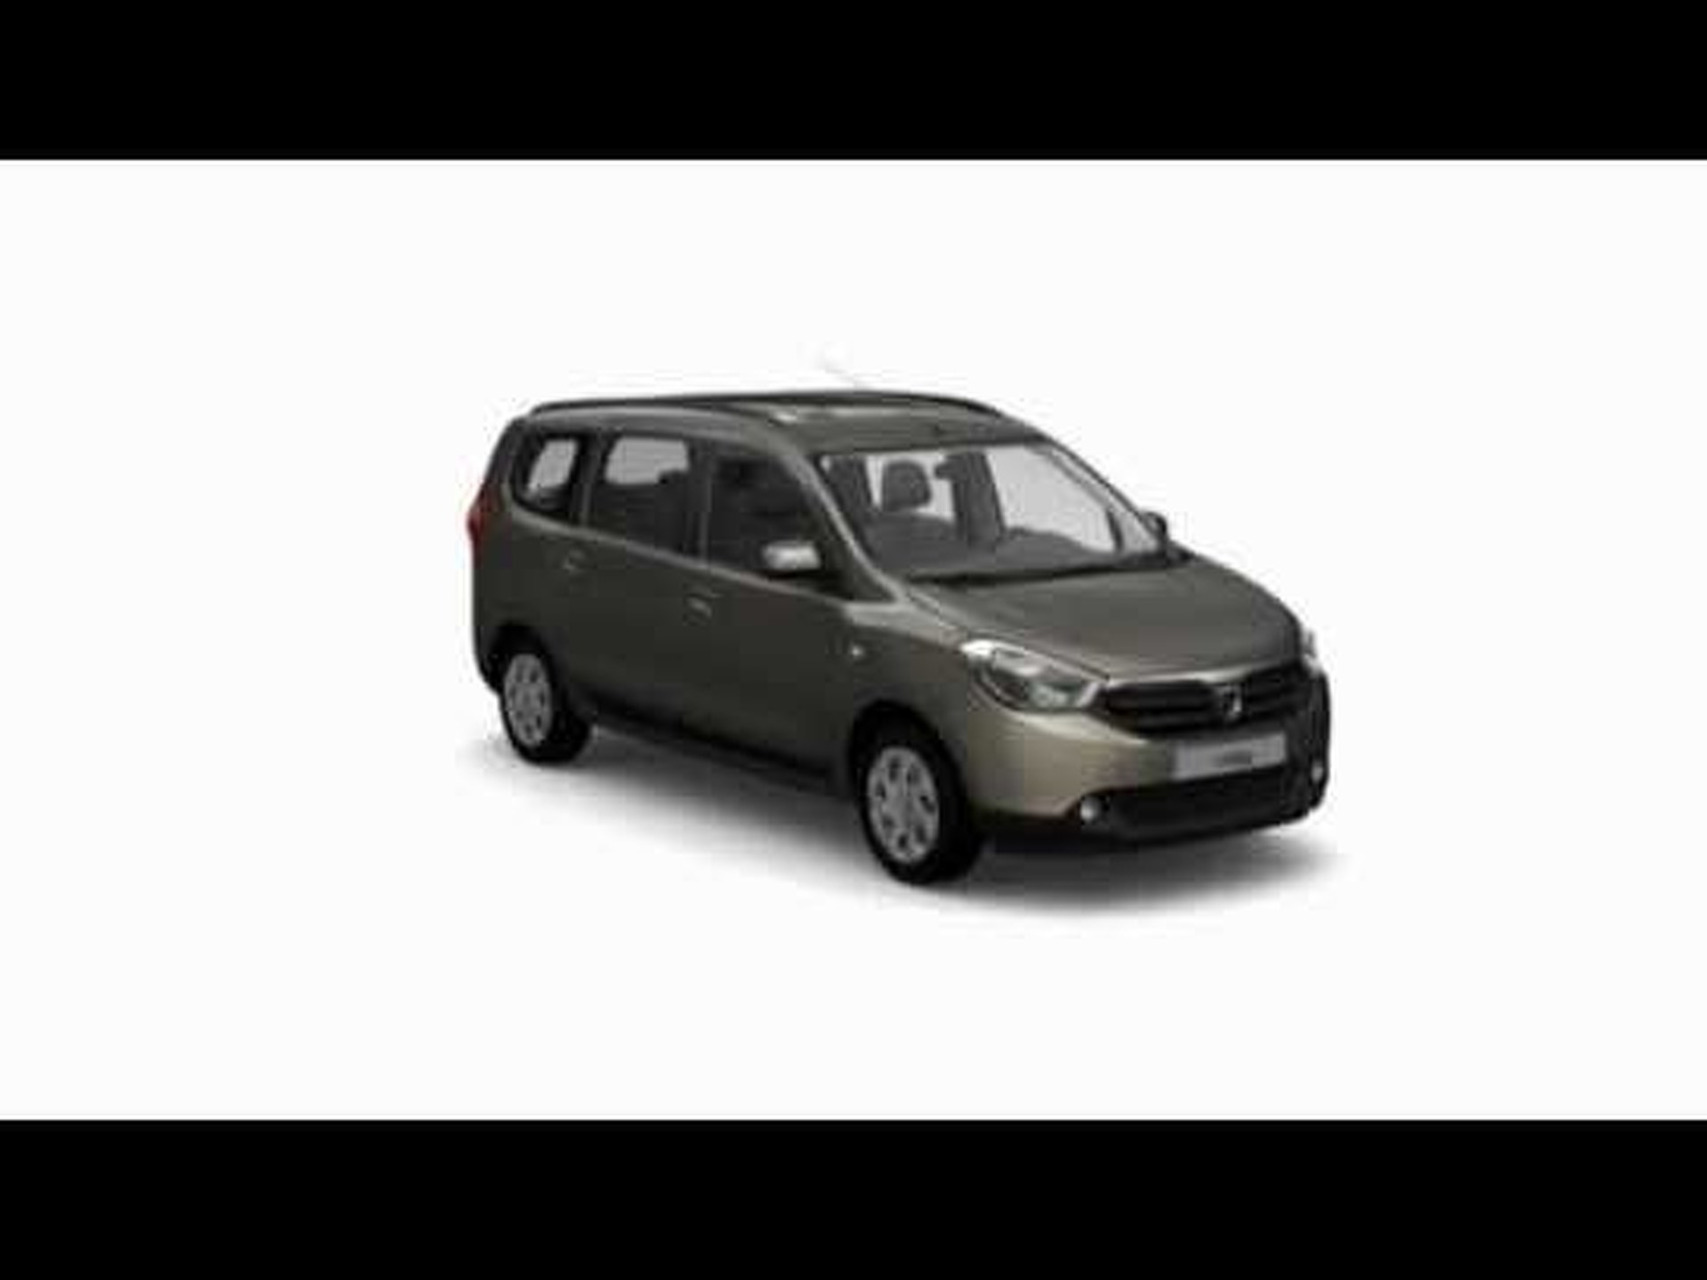 2013 Dacia Lodgy - 360°